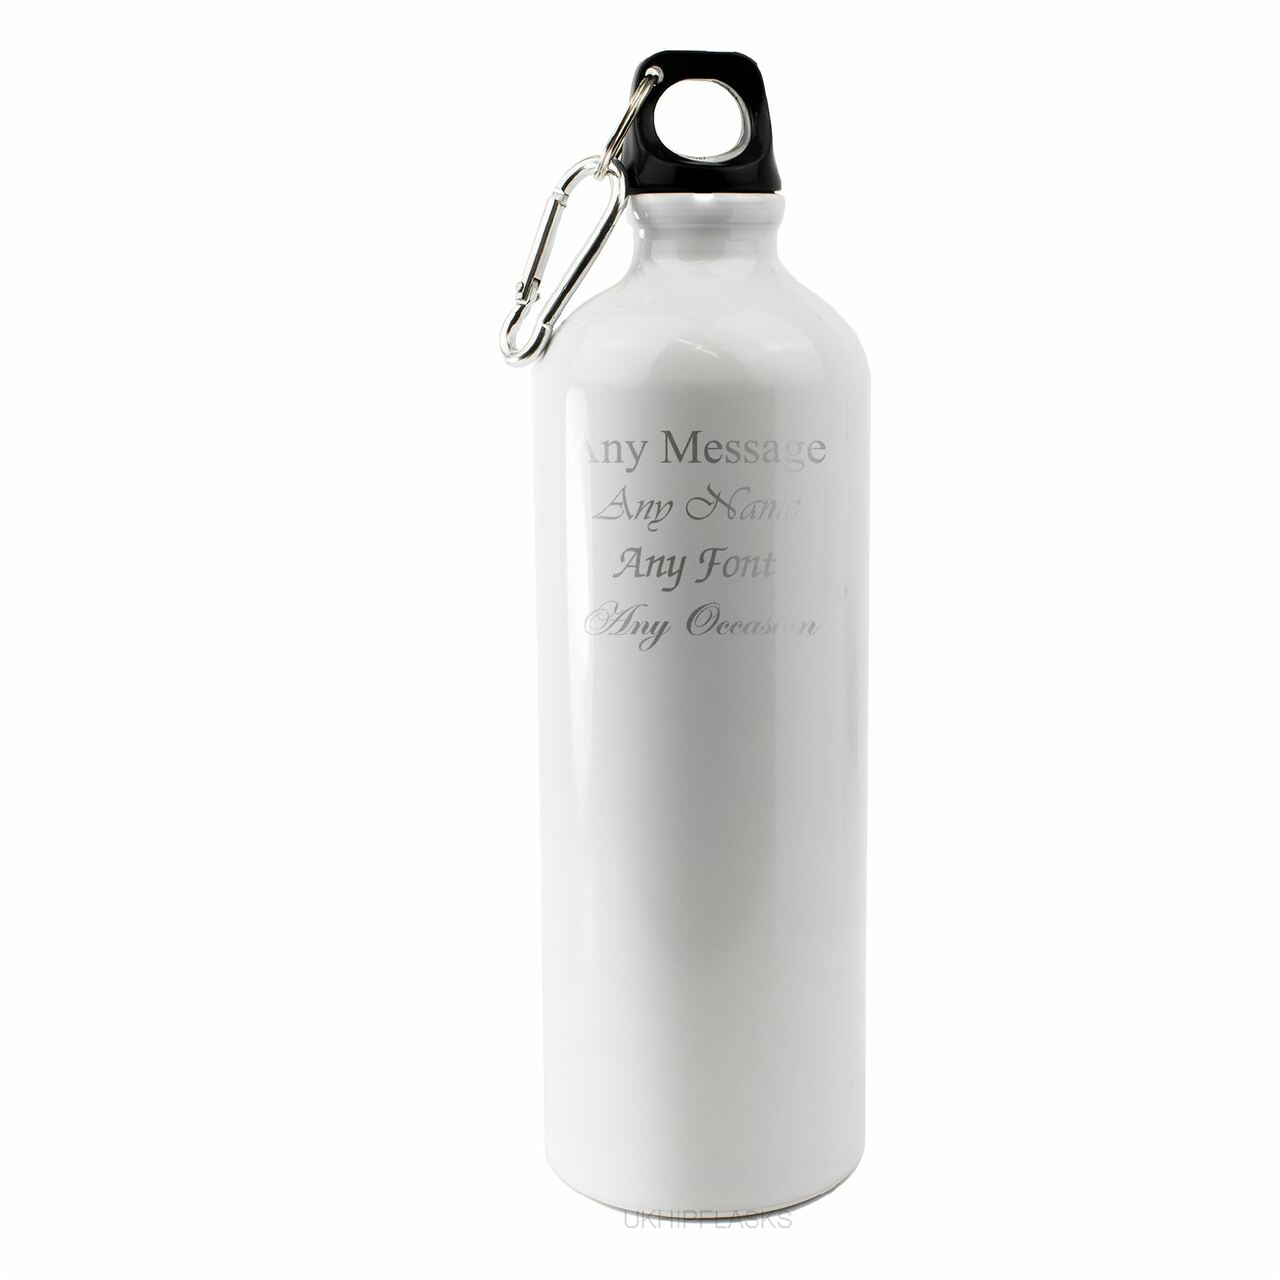 Engraved White Sports Bottle with any message